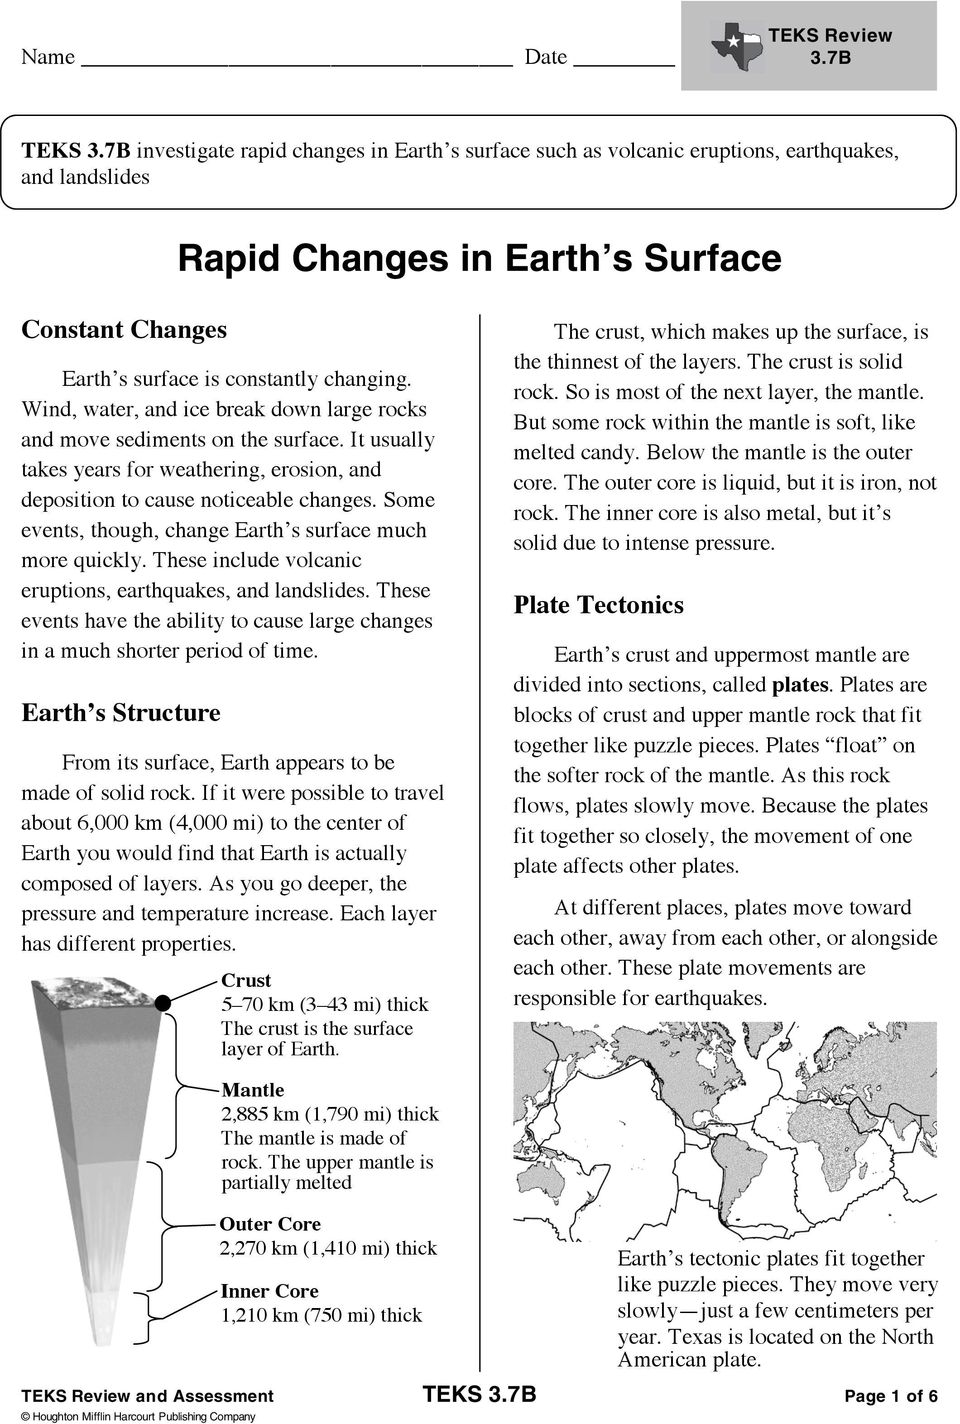 Some events, though, change Earth s surface much more quickly. These include volcanic eruptions, earthquakes, and landslides.